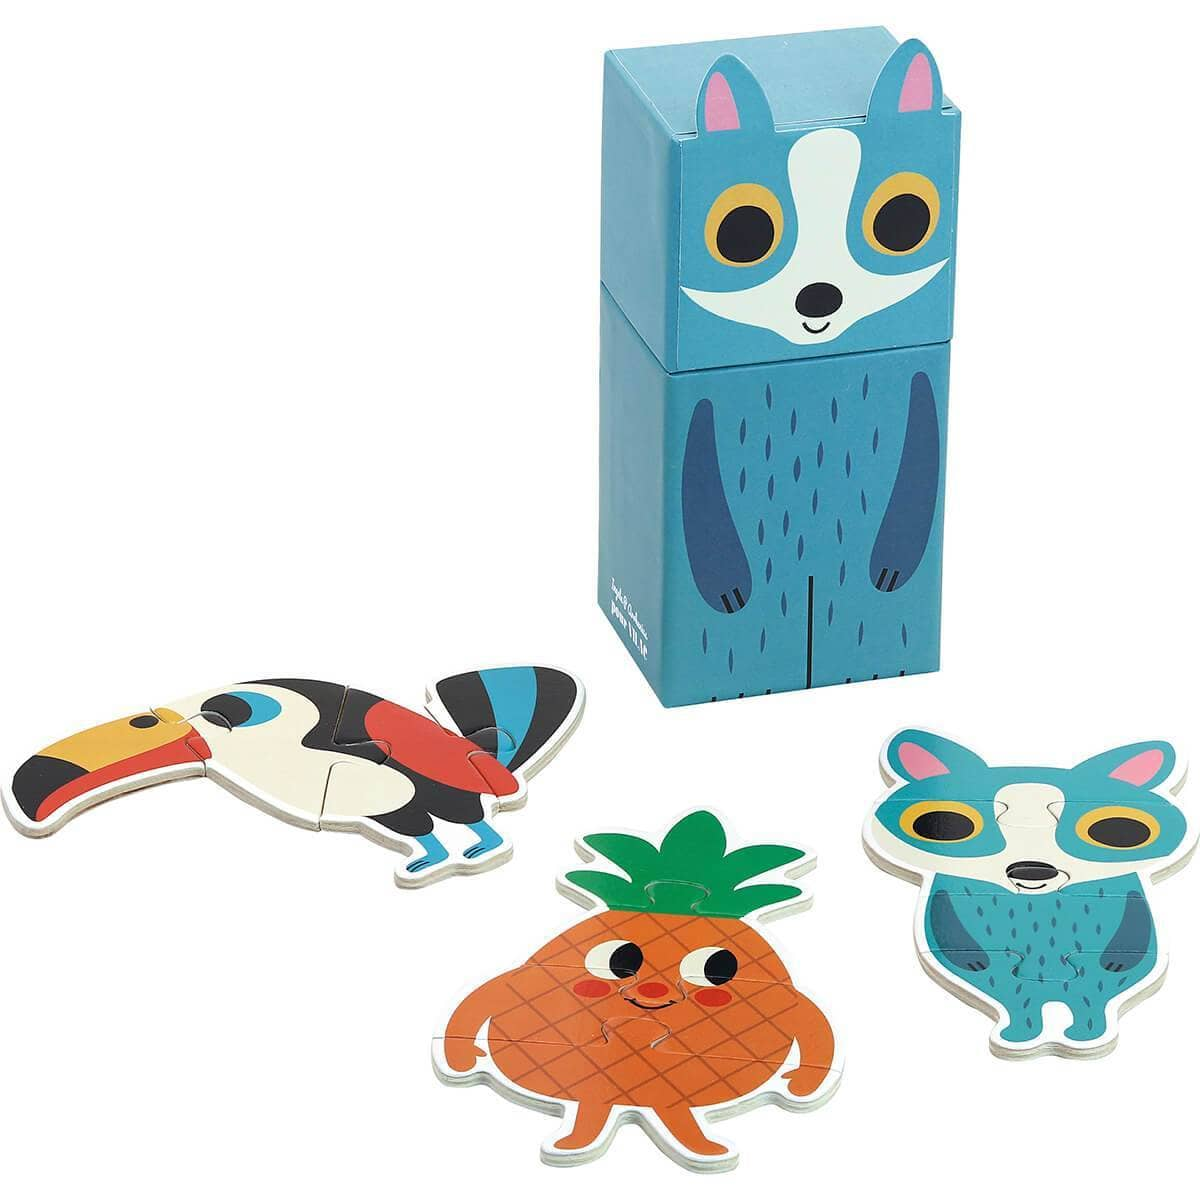 Mini Wooden Puzzles Racoon Box-Kidding Around NYC